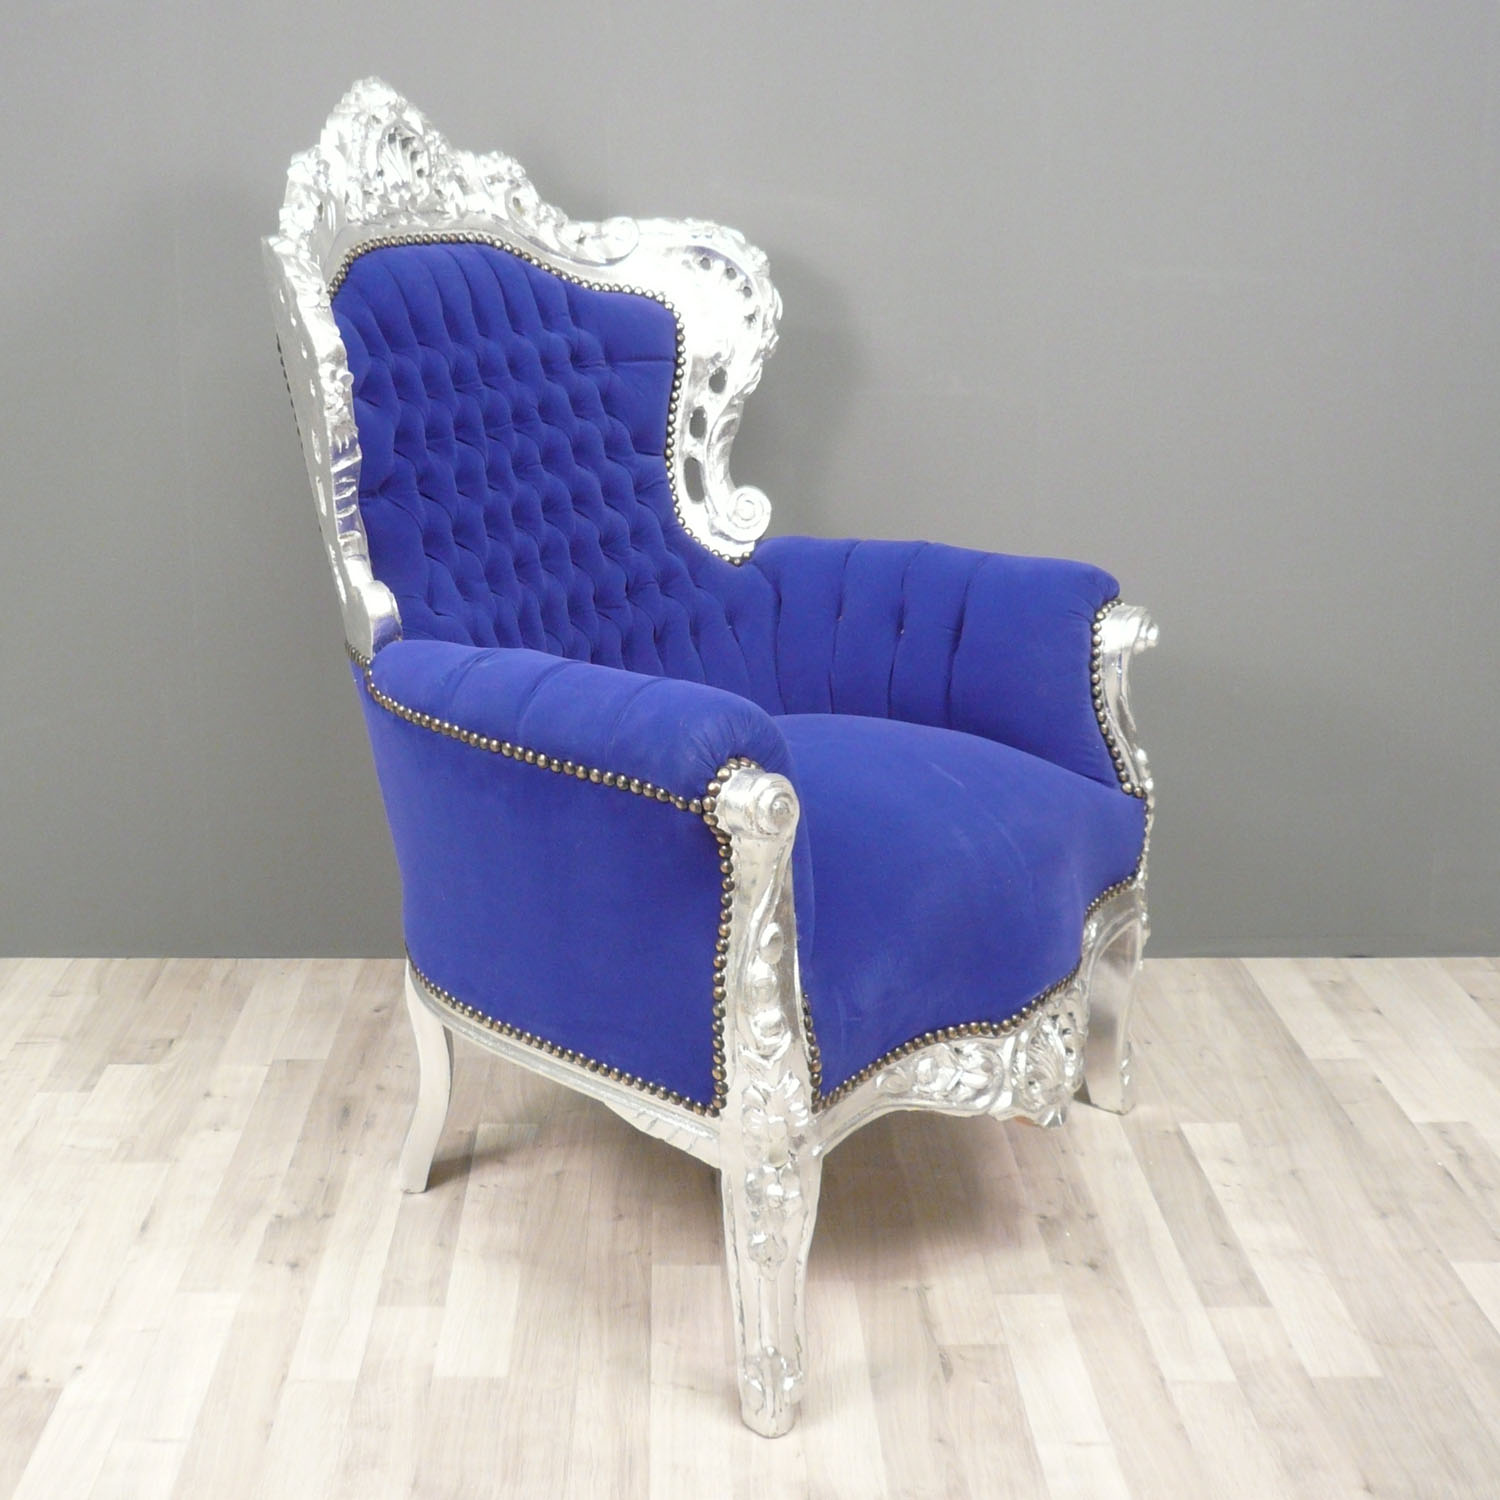 fauteuil baroque bleu fauteuils baroques. Black Bedroom Furniture Sets. Home Design Ideas